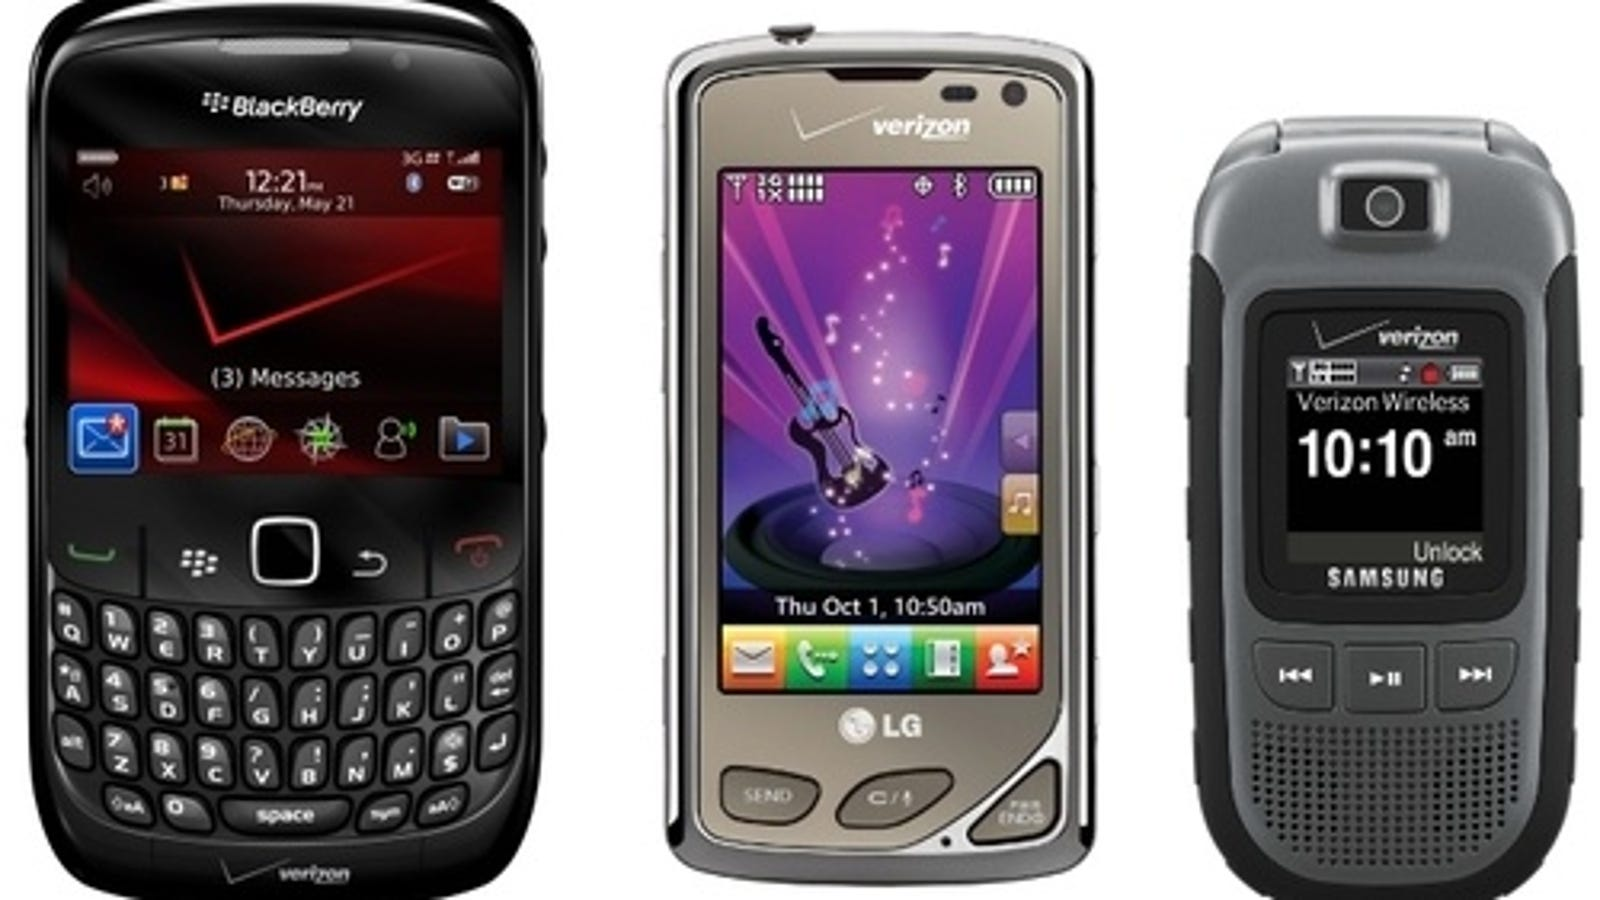 LG Chocolate Touch, BlackBerry Curve 8530, and Samsung Convoy